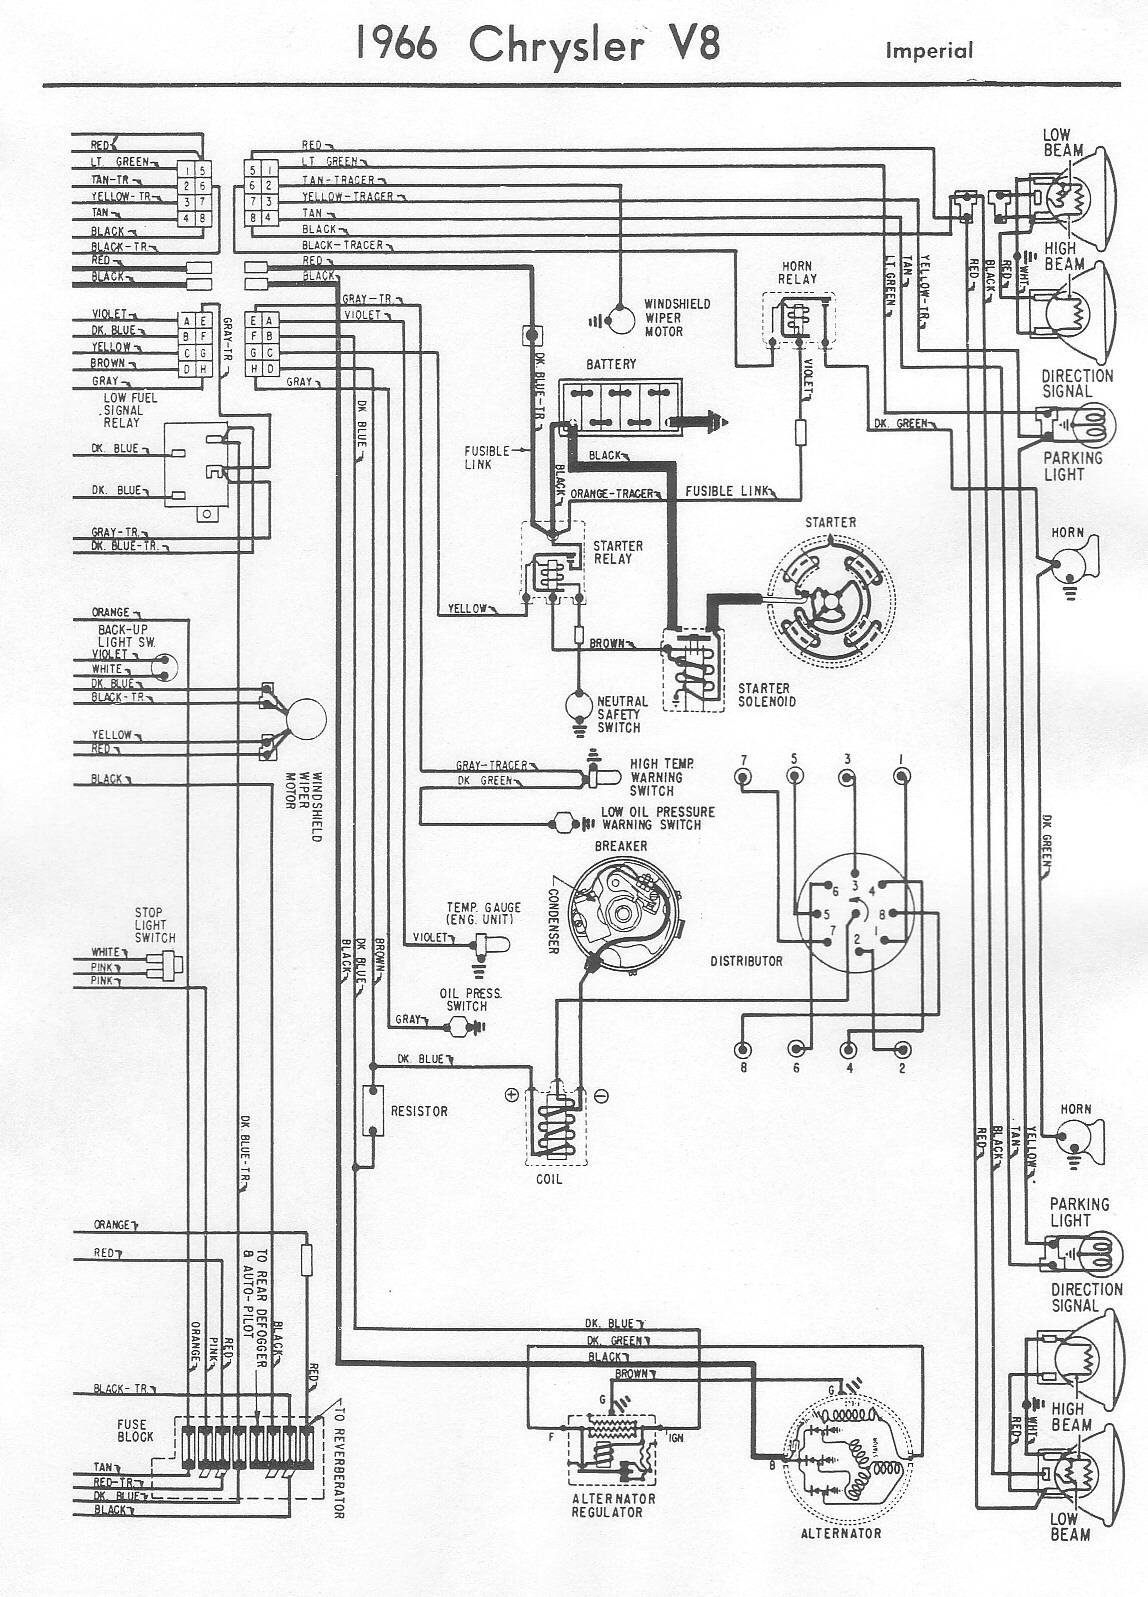 C3 Corvette Wiring Diagram Get Free Image About together with 56 Ford F100 Wiring Diagram also I6 Individual Throttle Bodies Project T87803 400 together with Wiring Diagram 1973 Chrysler Imperial also 2001 Ford F150 Wont Shift To 4 Wheel. on el falcon wiring diagram